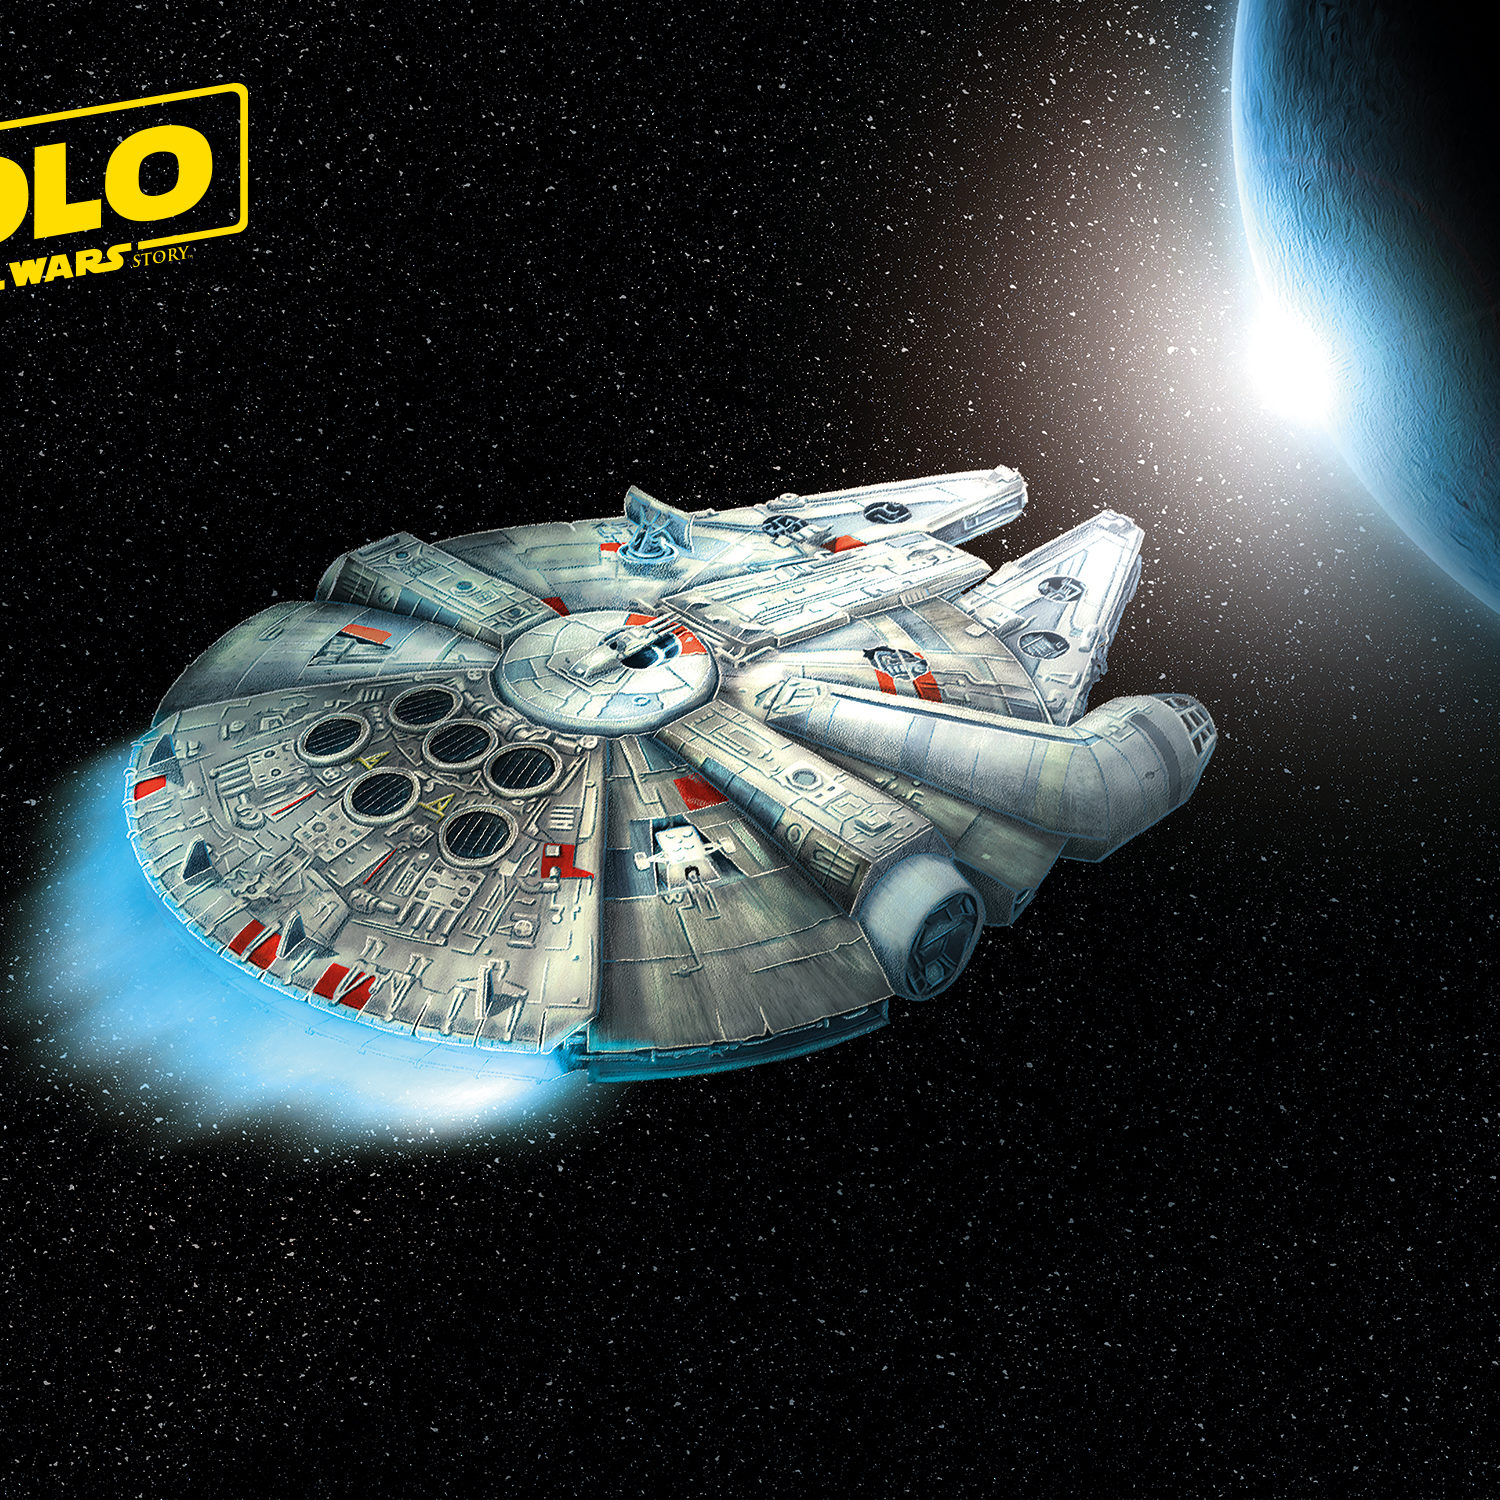 An alternate movie poster of Solo: A Star Wars Story featuring a digital painting of the Millennium Falcon.